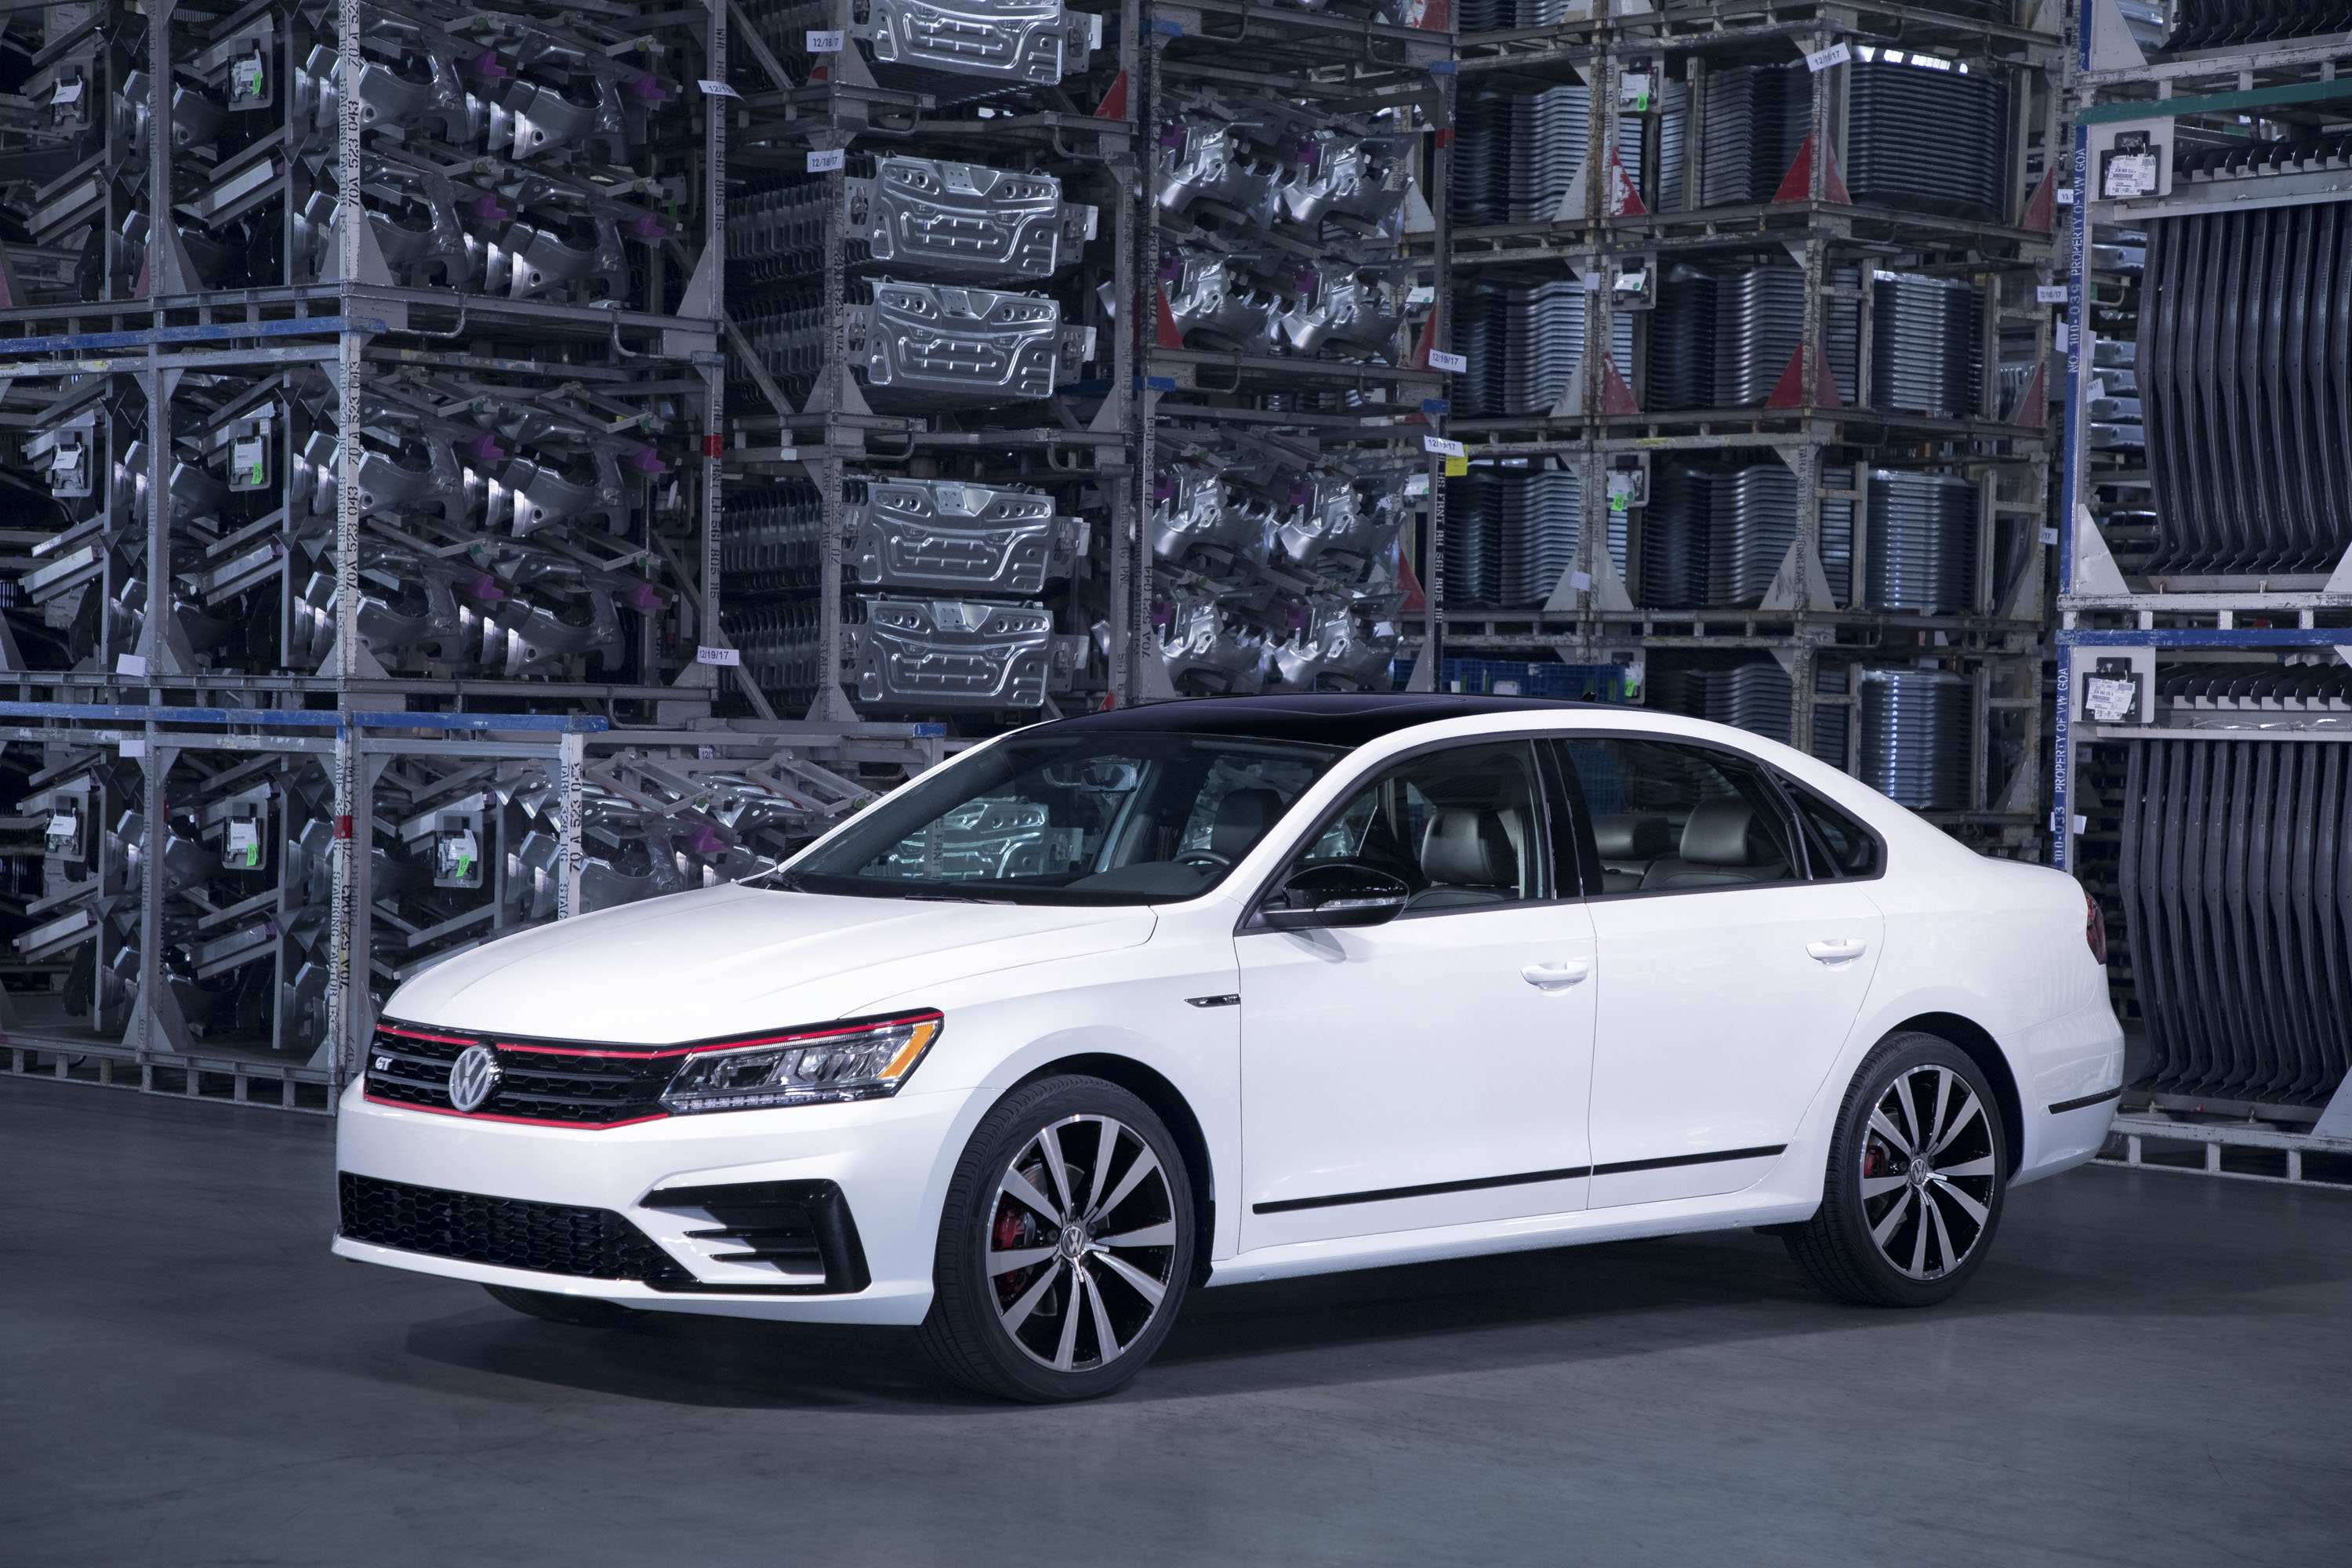 23 New VW Passat Gt 2020 Wallpaper for VW Passat Gt 2020